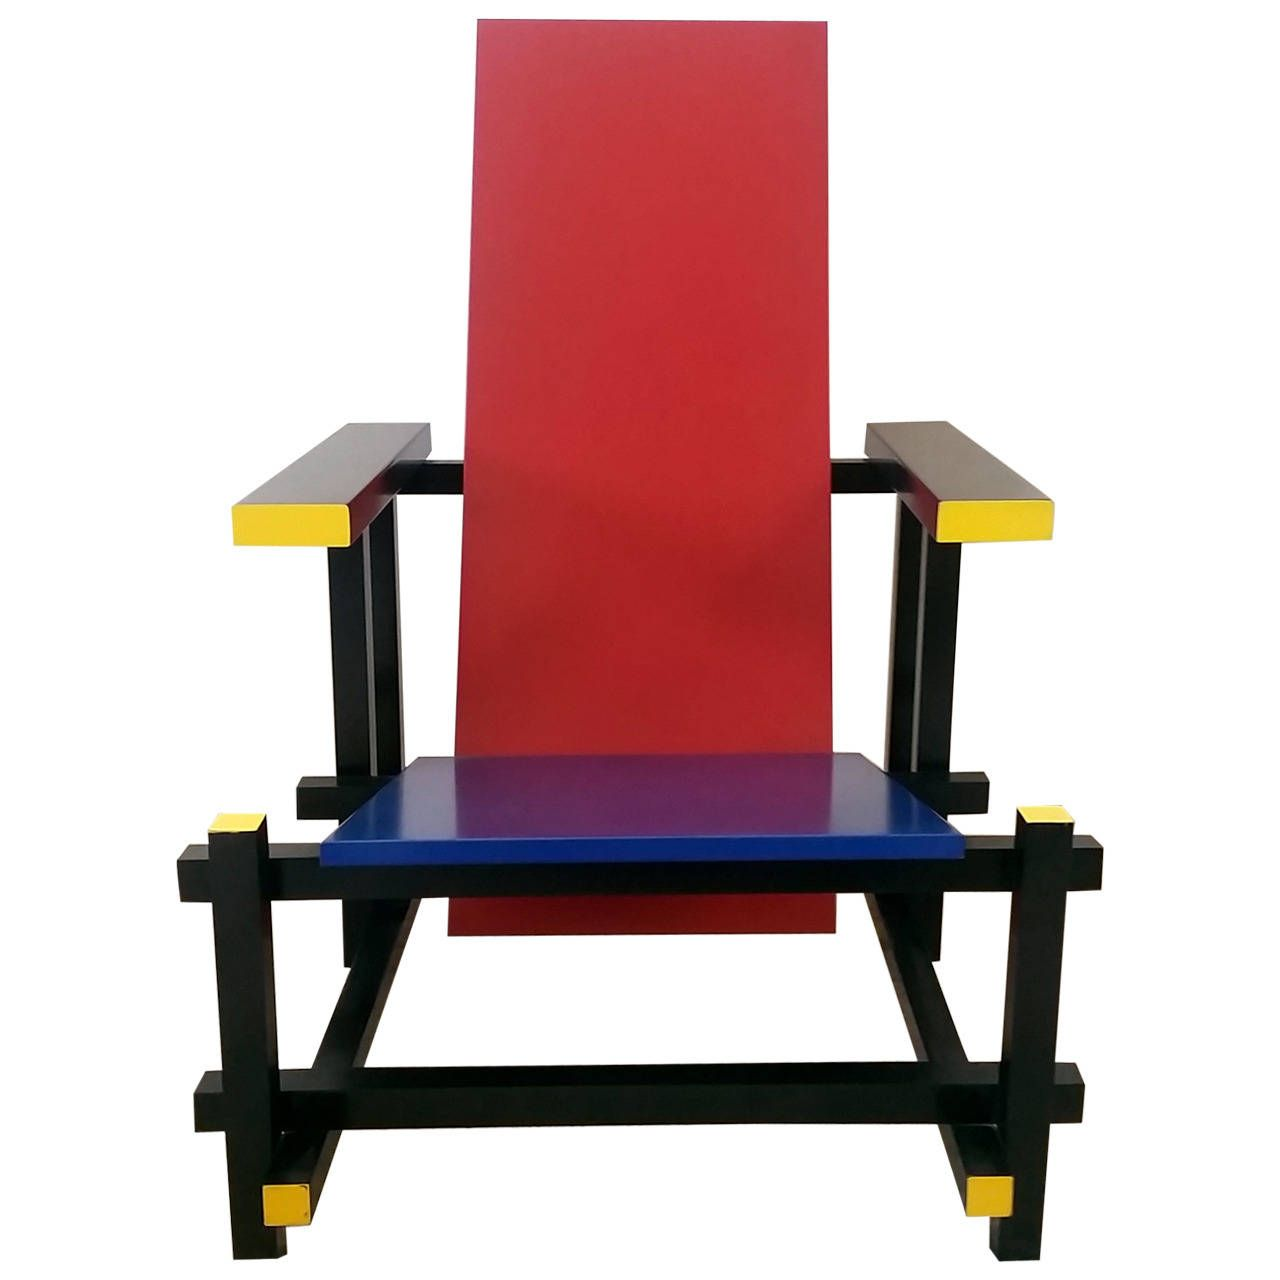 Gerrit rietveld chair for sale - View This Item And Discover Similar Lounge Chairs For Sale At A Gorgeous Red Blue Chair Designed After Gerrit Rietveld This Chair Bears No Manufacturer